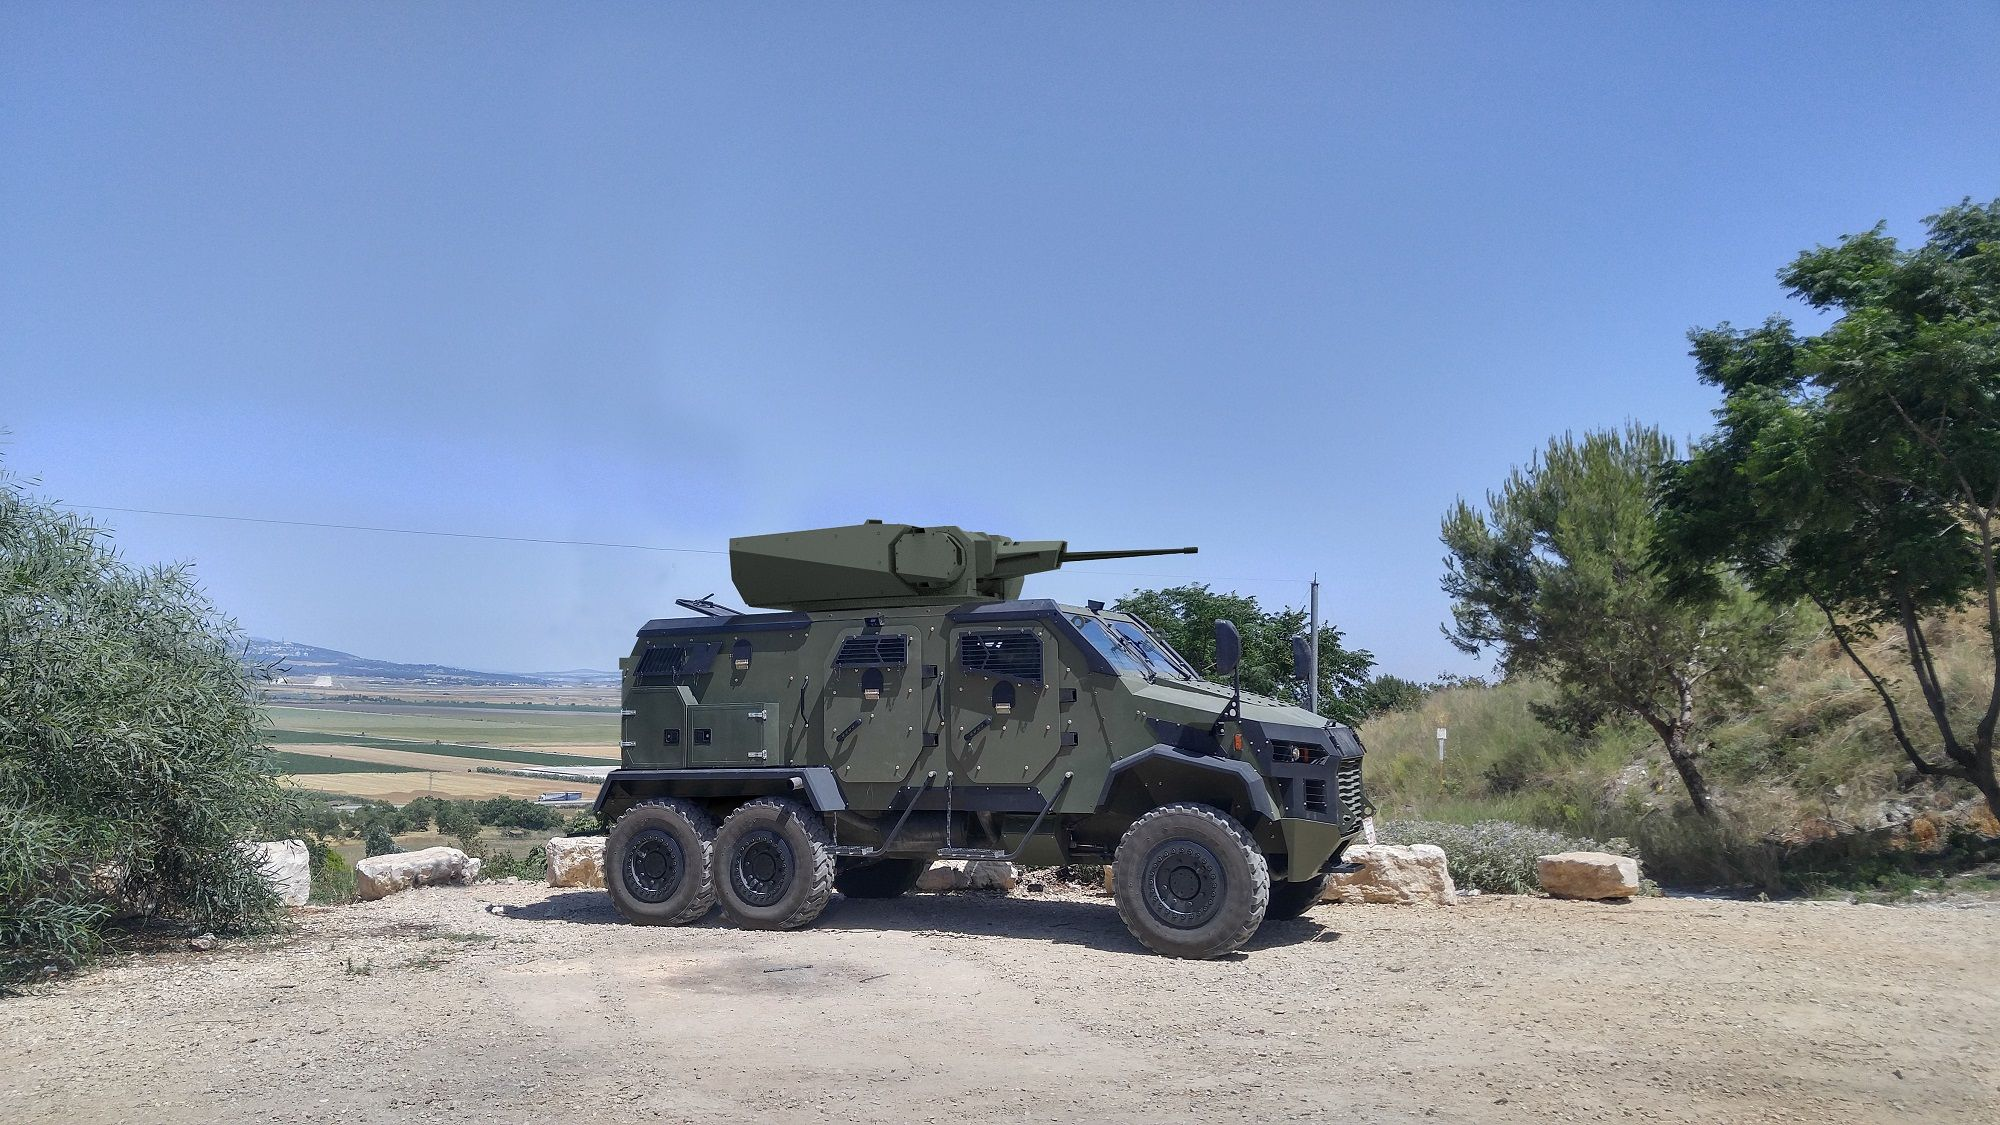 GAIA Automotive proposes affordable and flexible MRAPs. Pictured is an AMIR 6x6 armed with a remote weapon station. (Photo: GAIA)